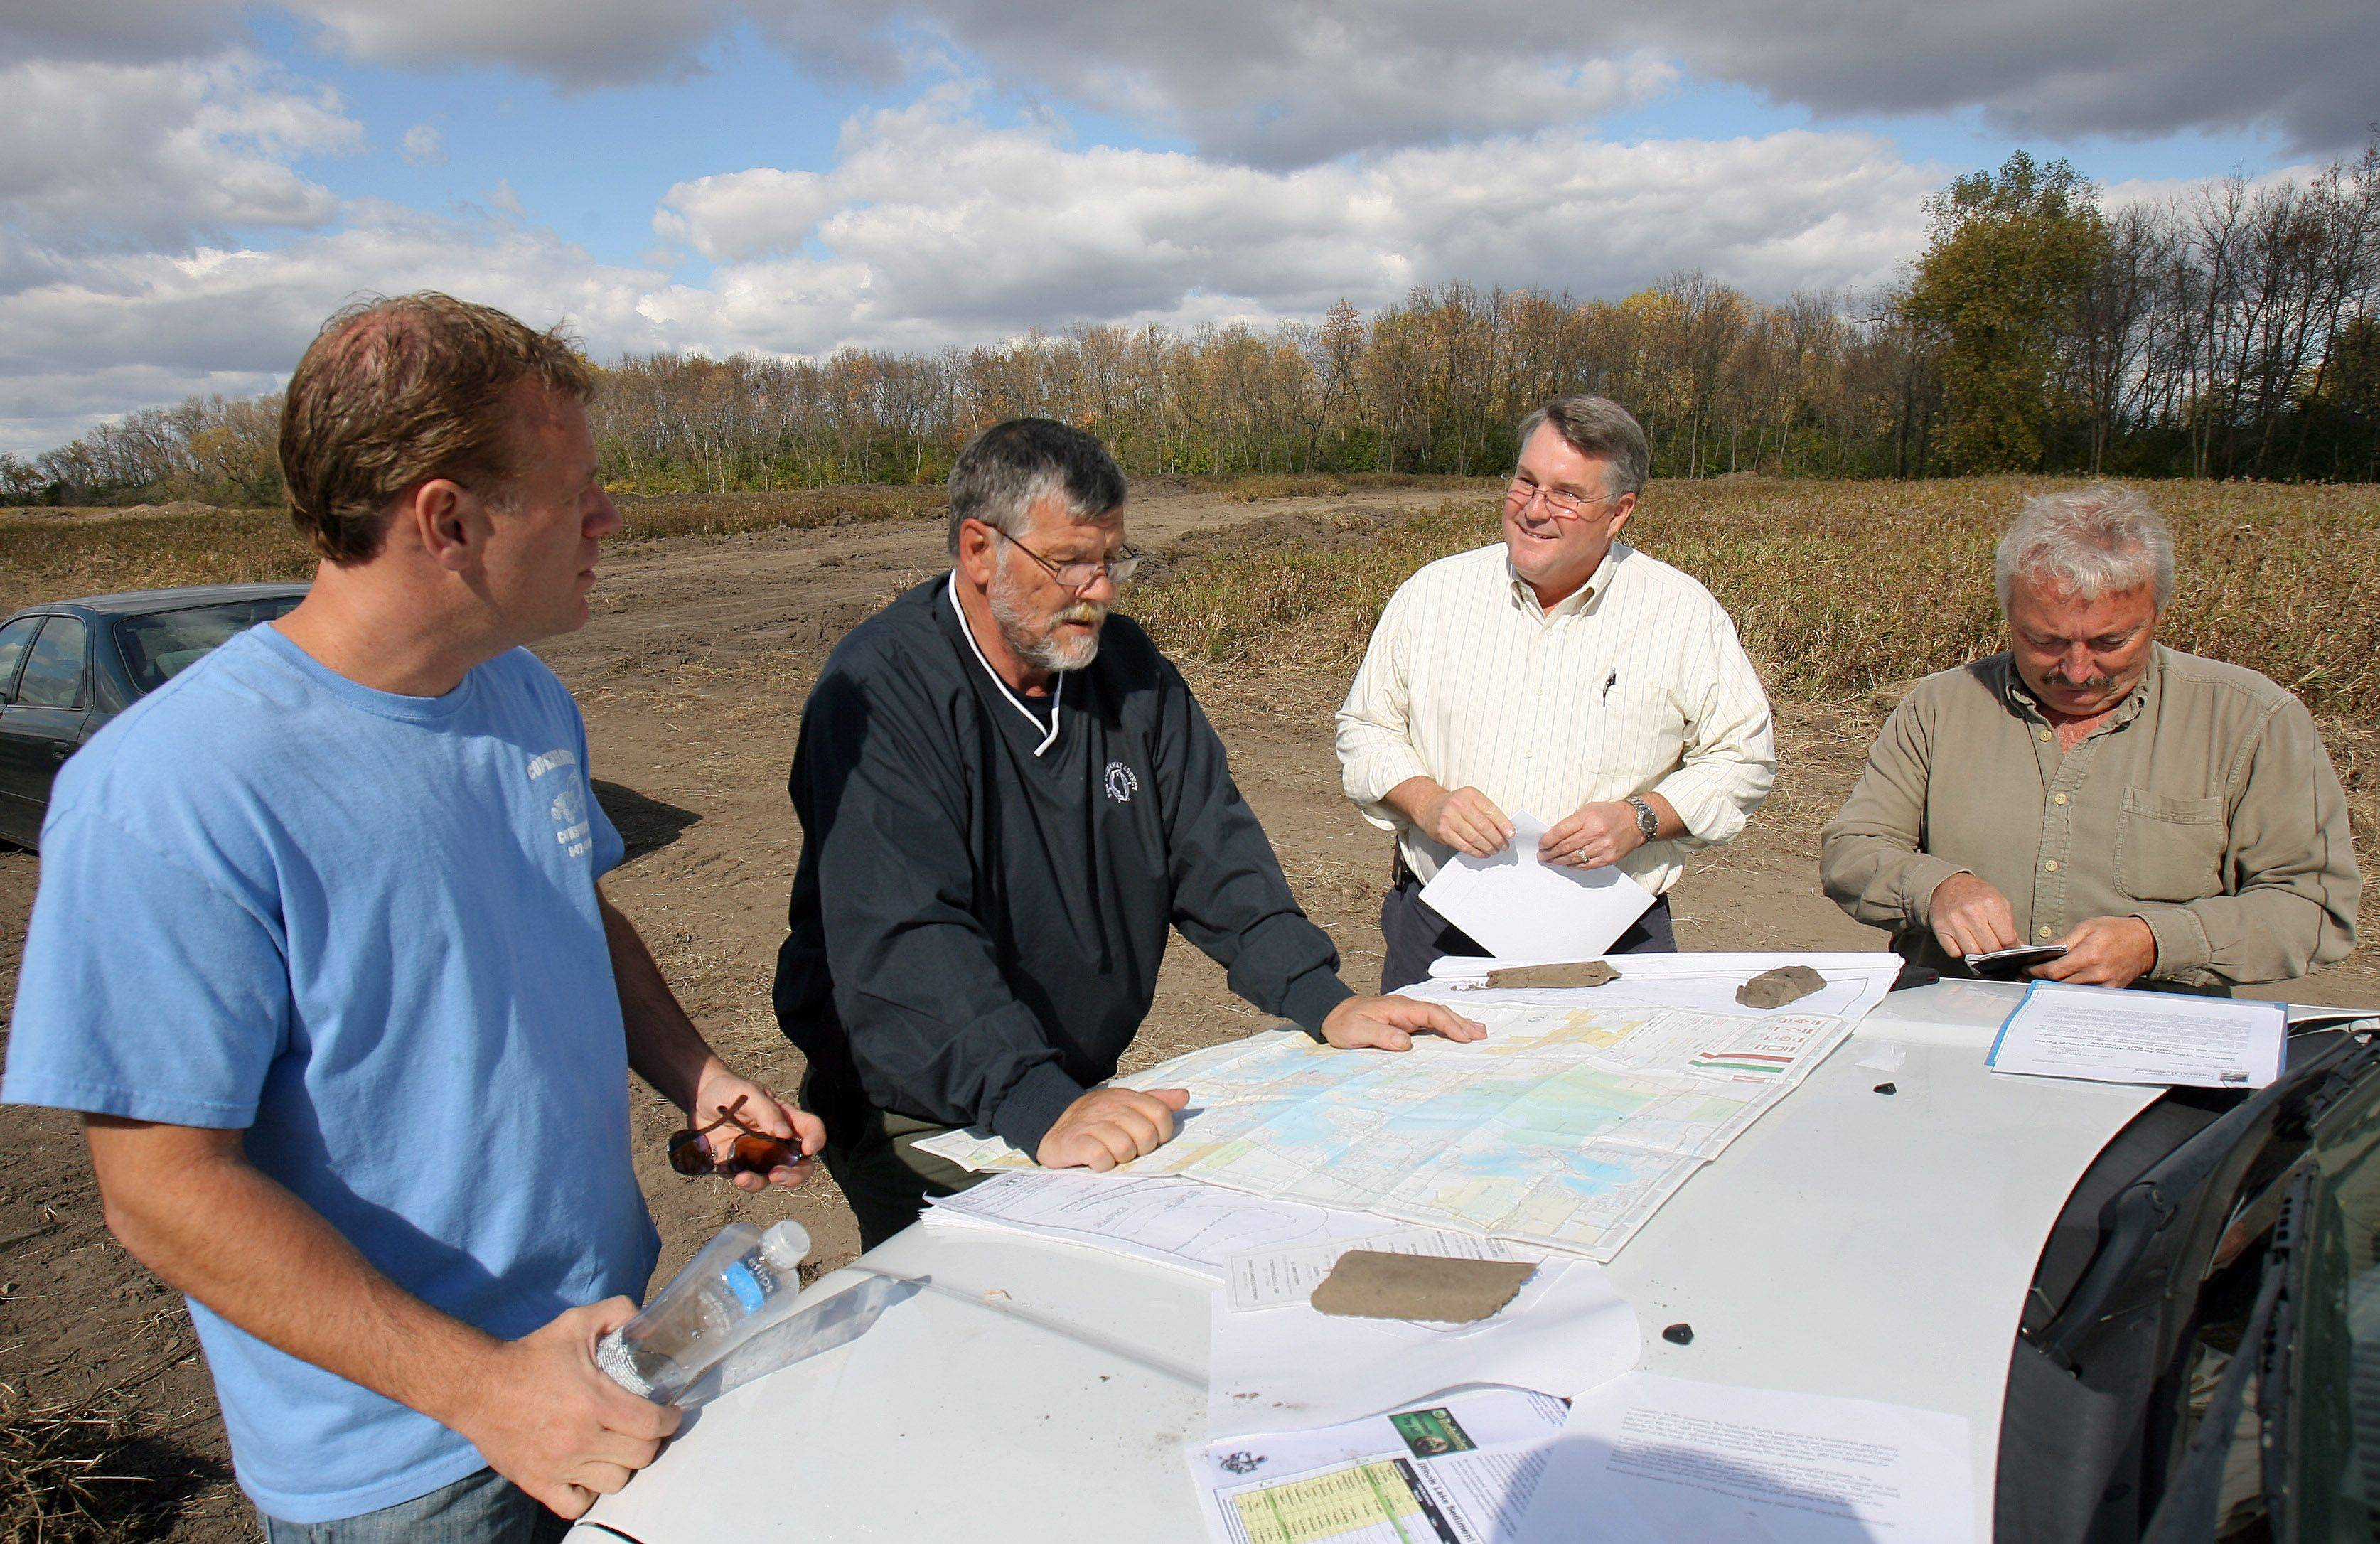 Ken Copenhaver, president of Copenhaver Construction; Ron Barker, deputy director of the Fox Waterway Agency; Jim Meyer, director of the Fox Waterway Agency; and, Wayne Blake, chairman of the Fox Waterway Agency, from left, check plans Friday for Cooper Farms. The $880,000 project that greatly increase the area in which the agency can store and dry sediment dredged from area waterways.